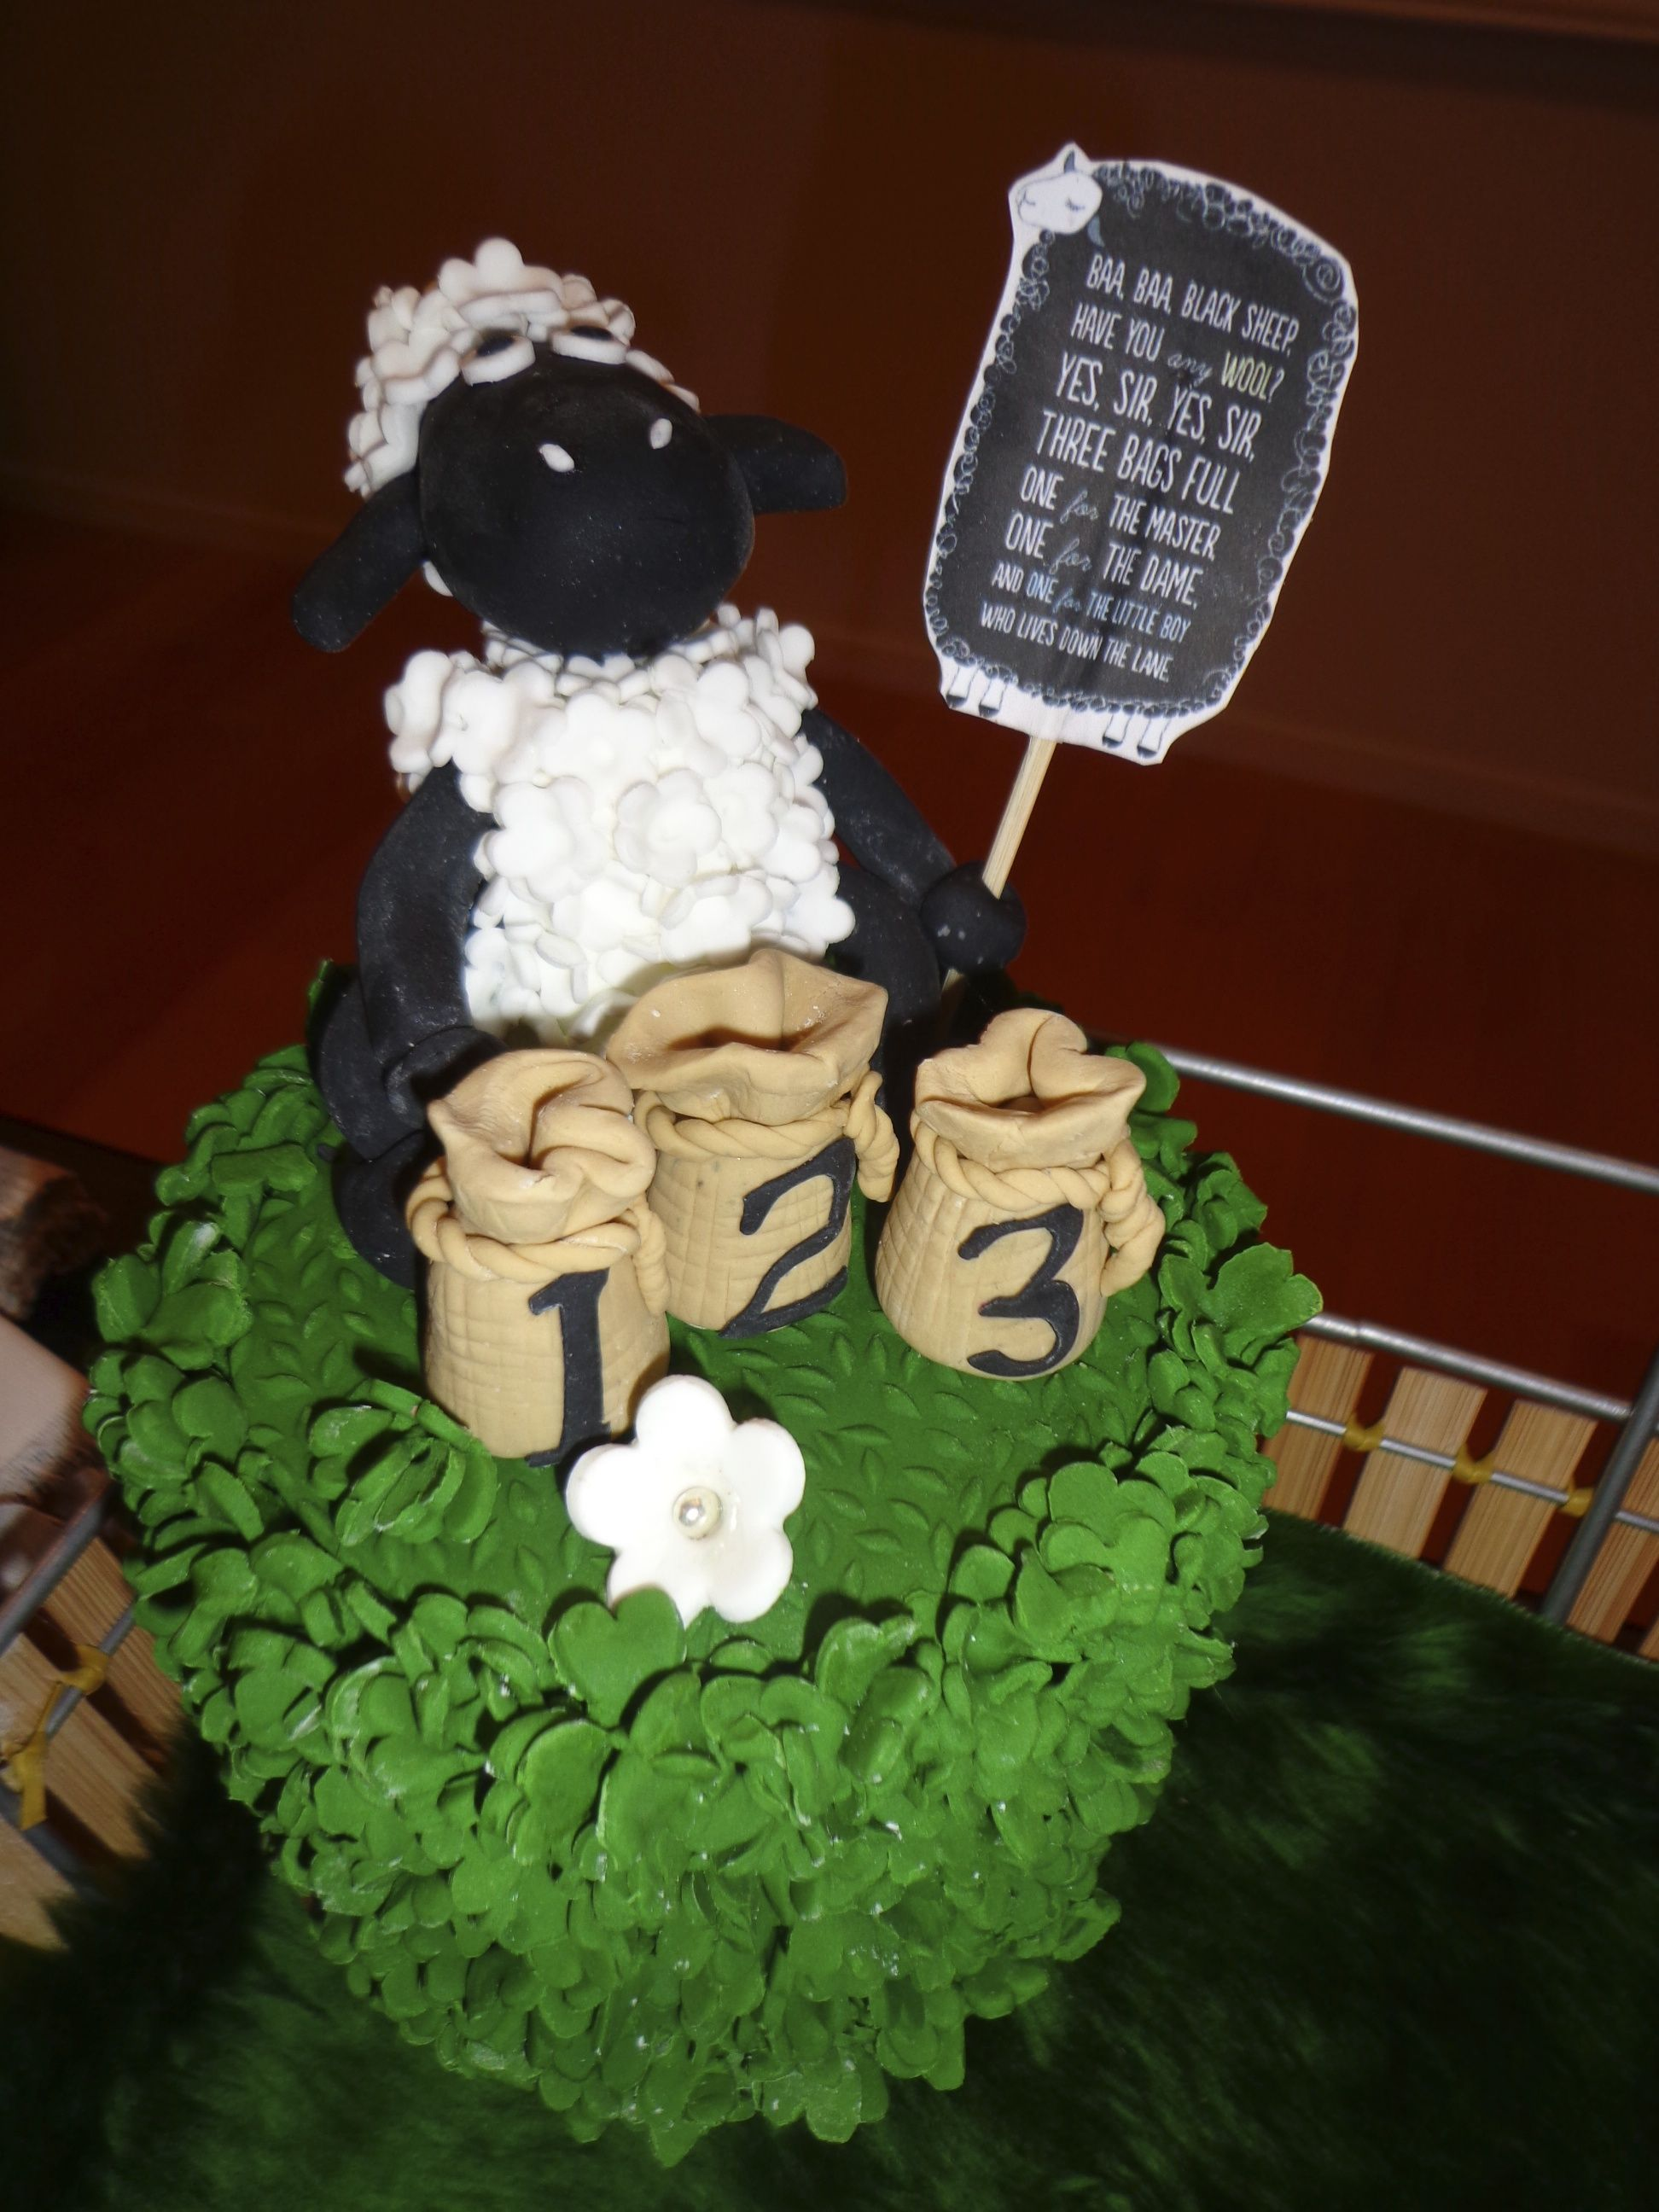 Baa baa black sheep display cake my cakes pinterest cake